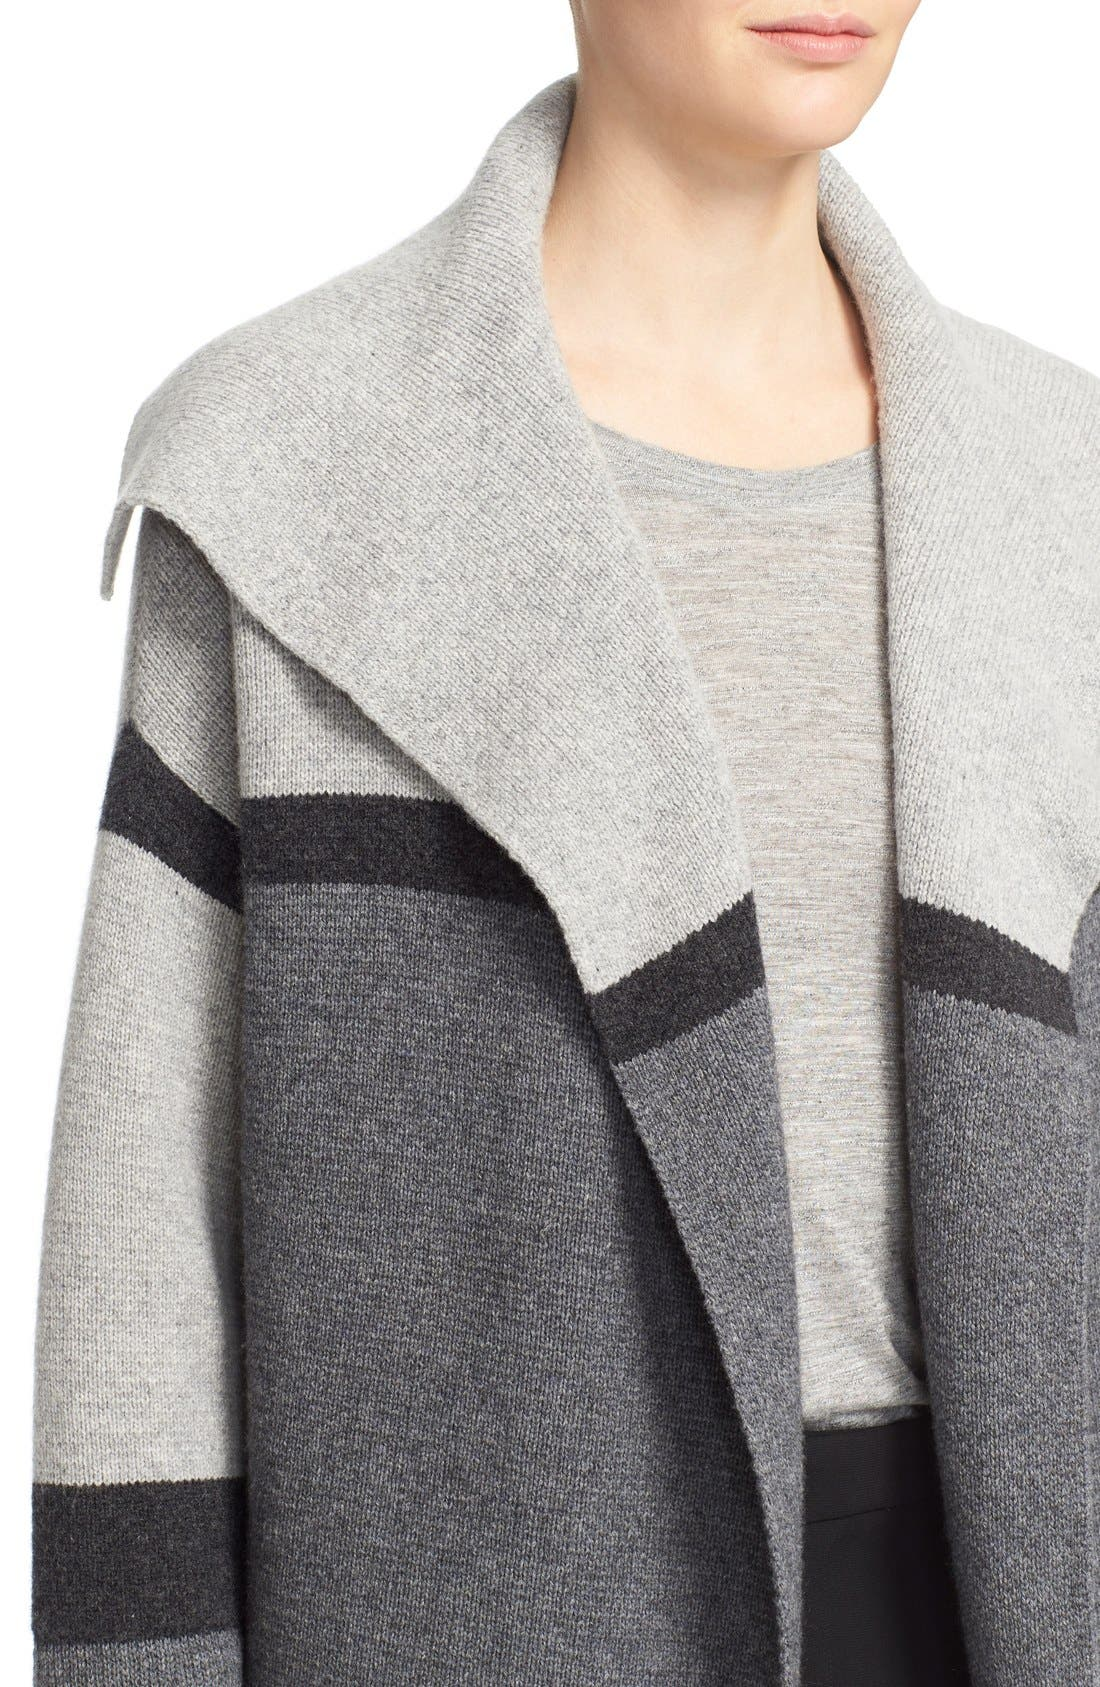 Colorblock Wool & Cashmere Knit Car Coat,                             Alternate thumbnail 5, color,                             Heather Steal/ Stone/ Carbon